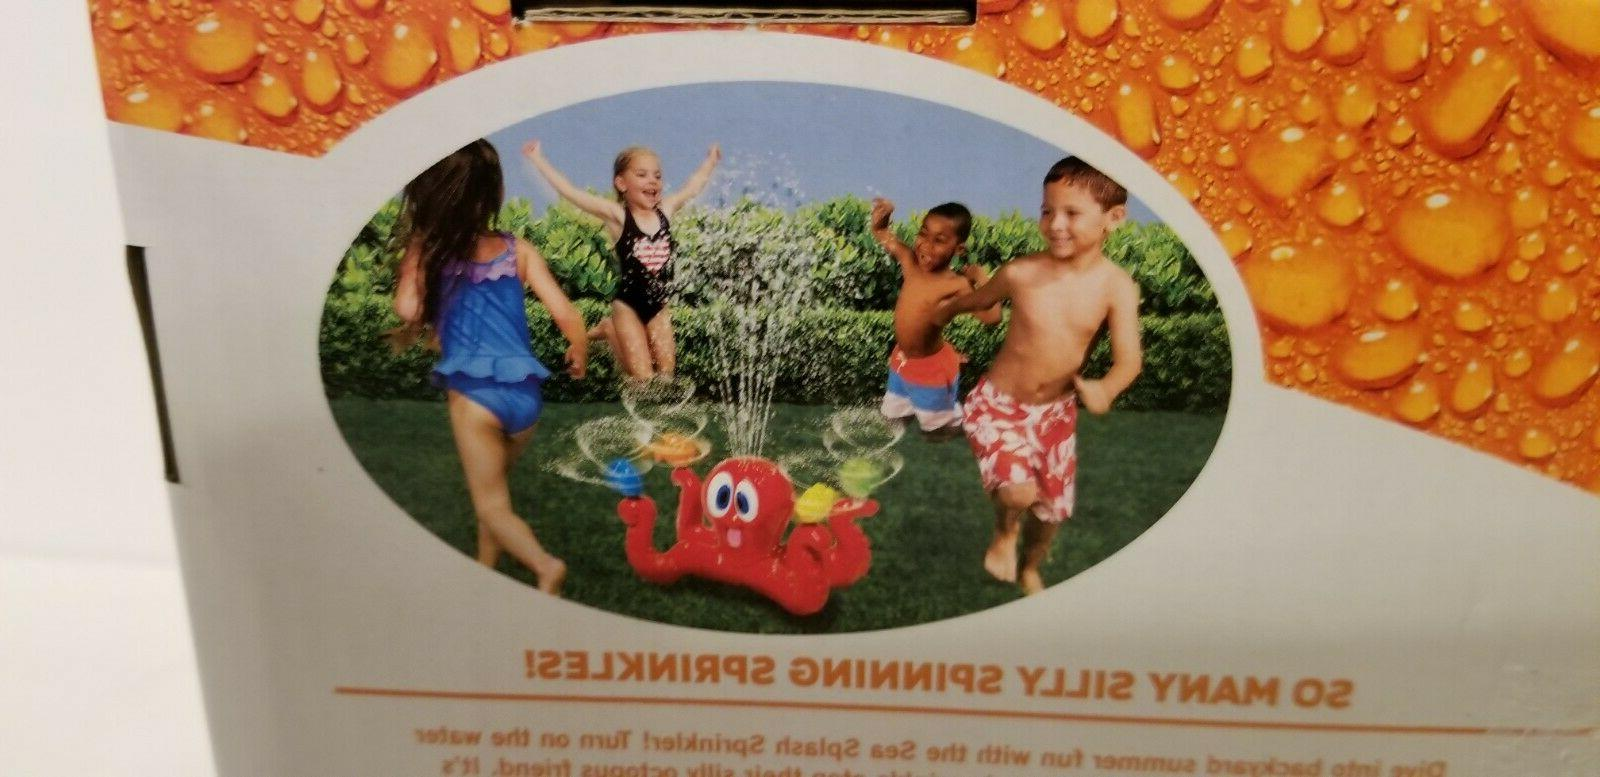 Banzai Splash Sprinkler Spinning NIP Outdoor Kids